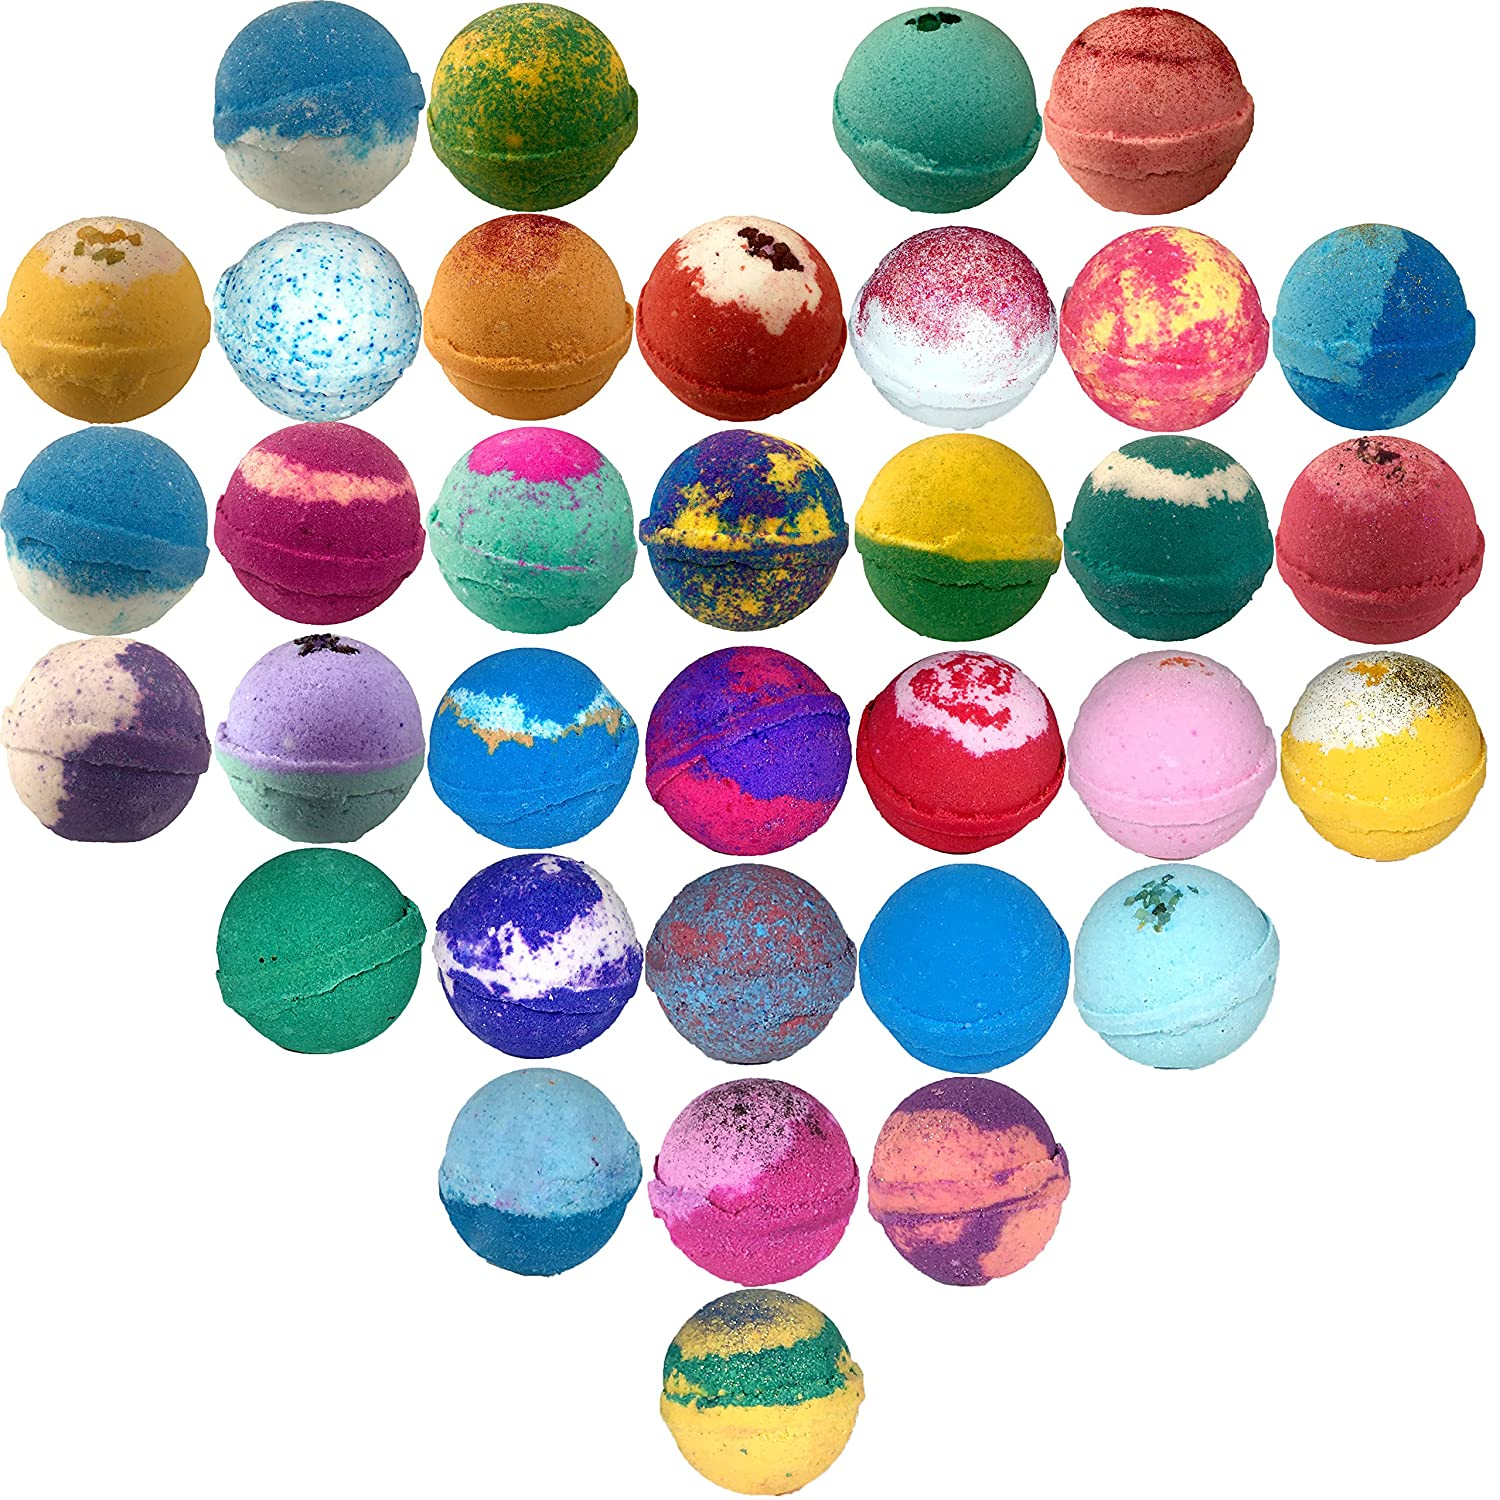 Amazoncom Bath Bombs Beauty Personal Care